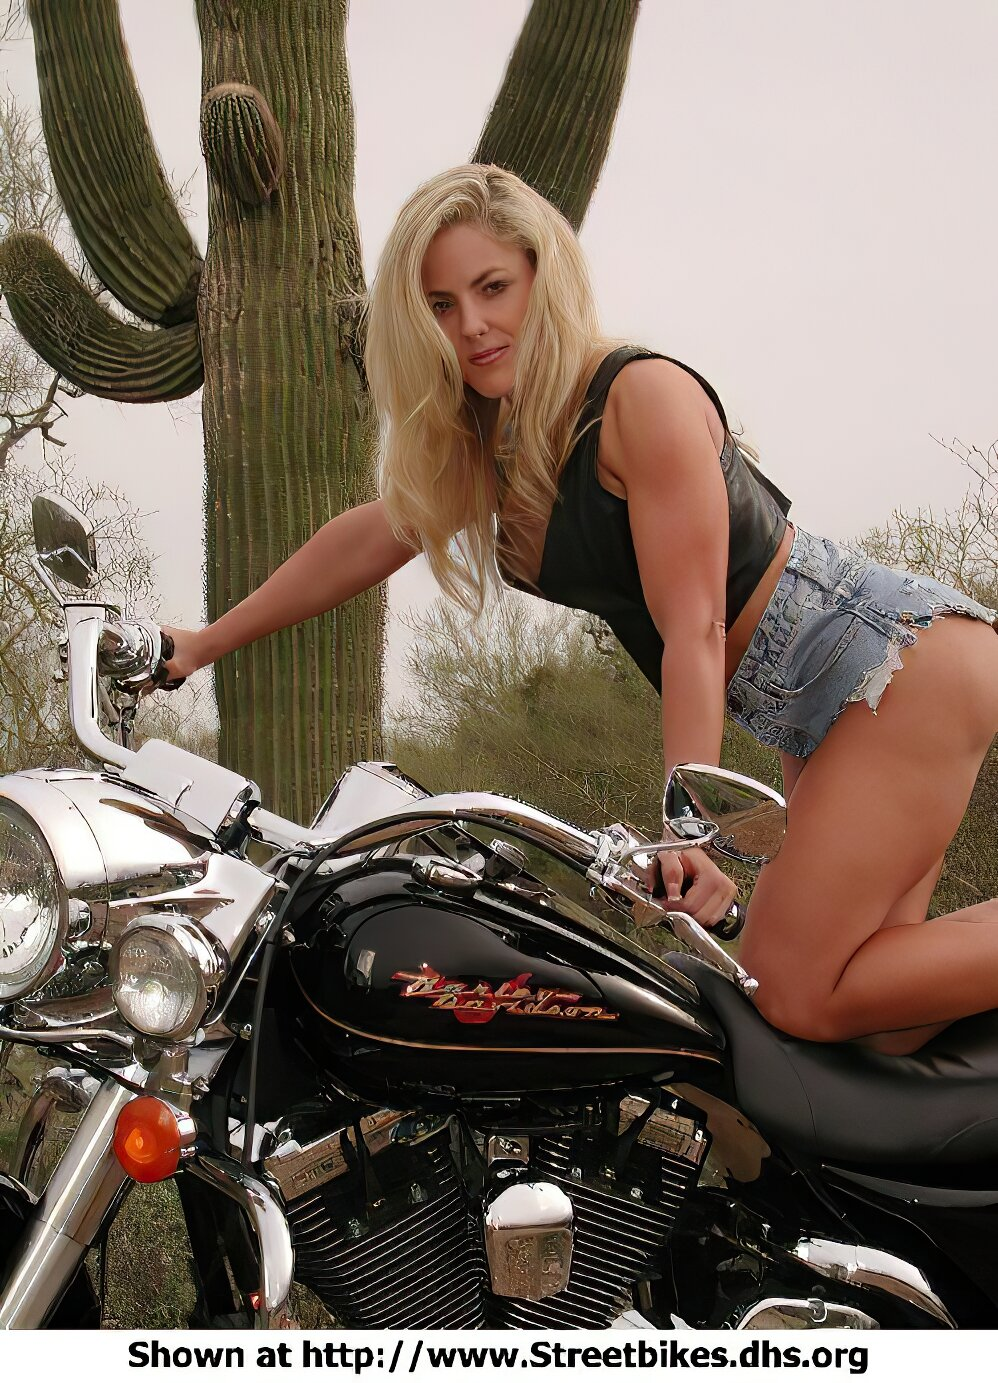 Harley-Davidson Unknown (HD) - ID: 1412